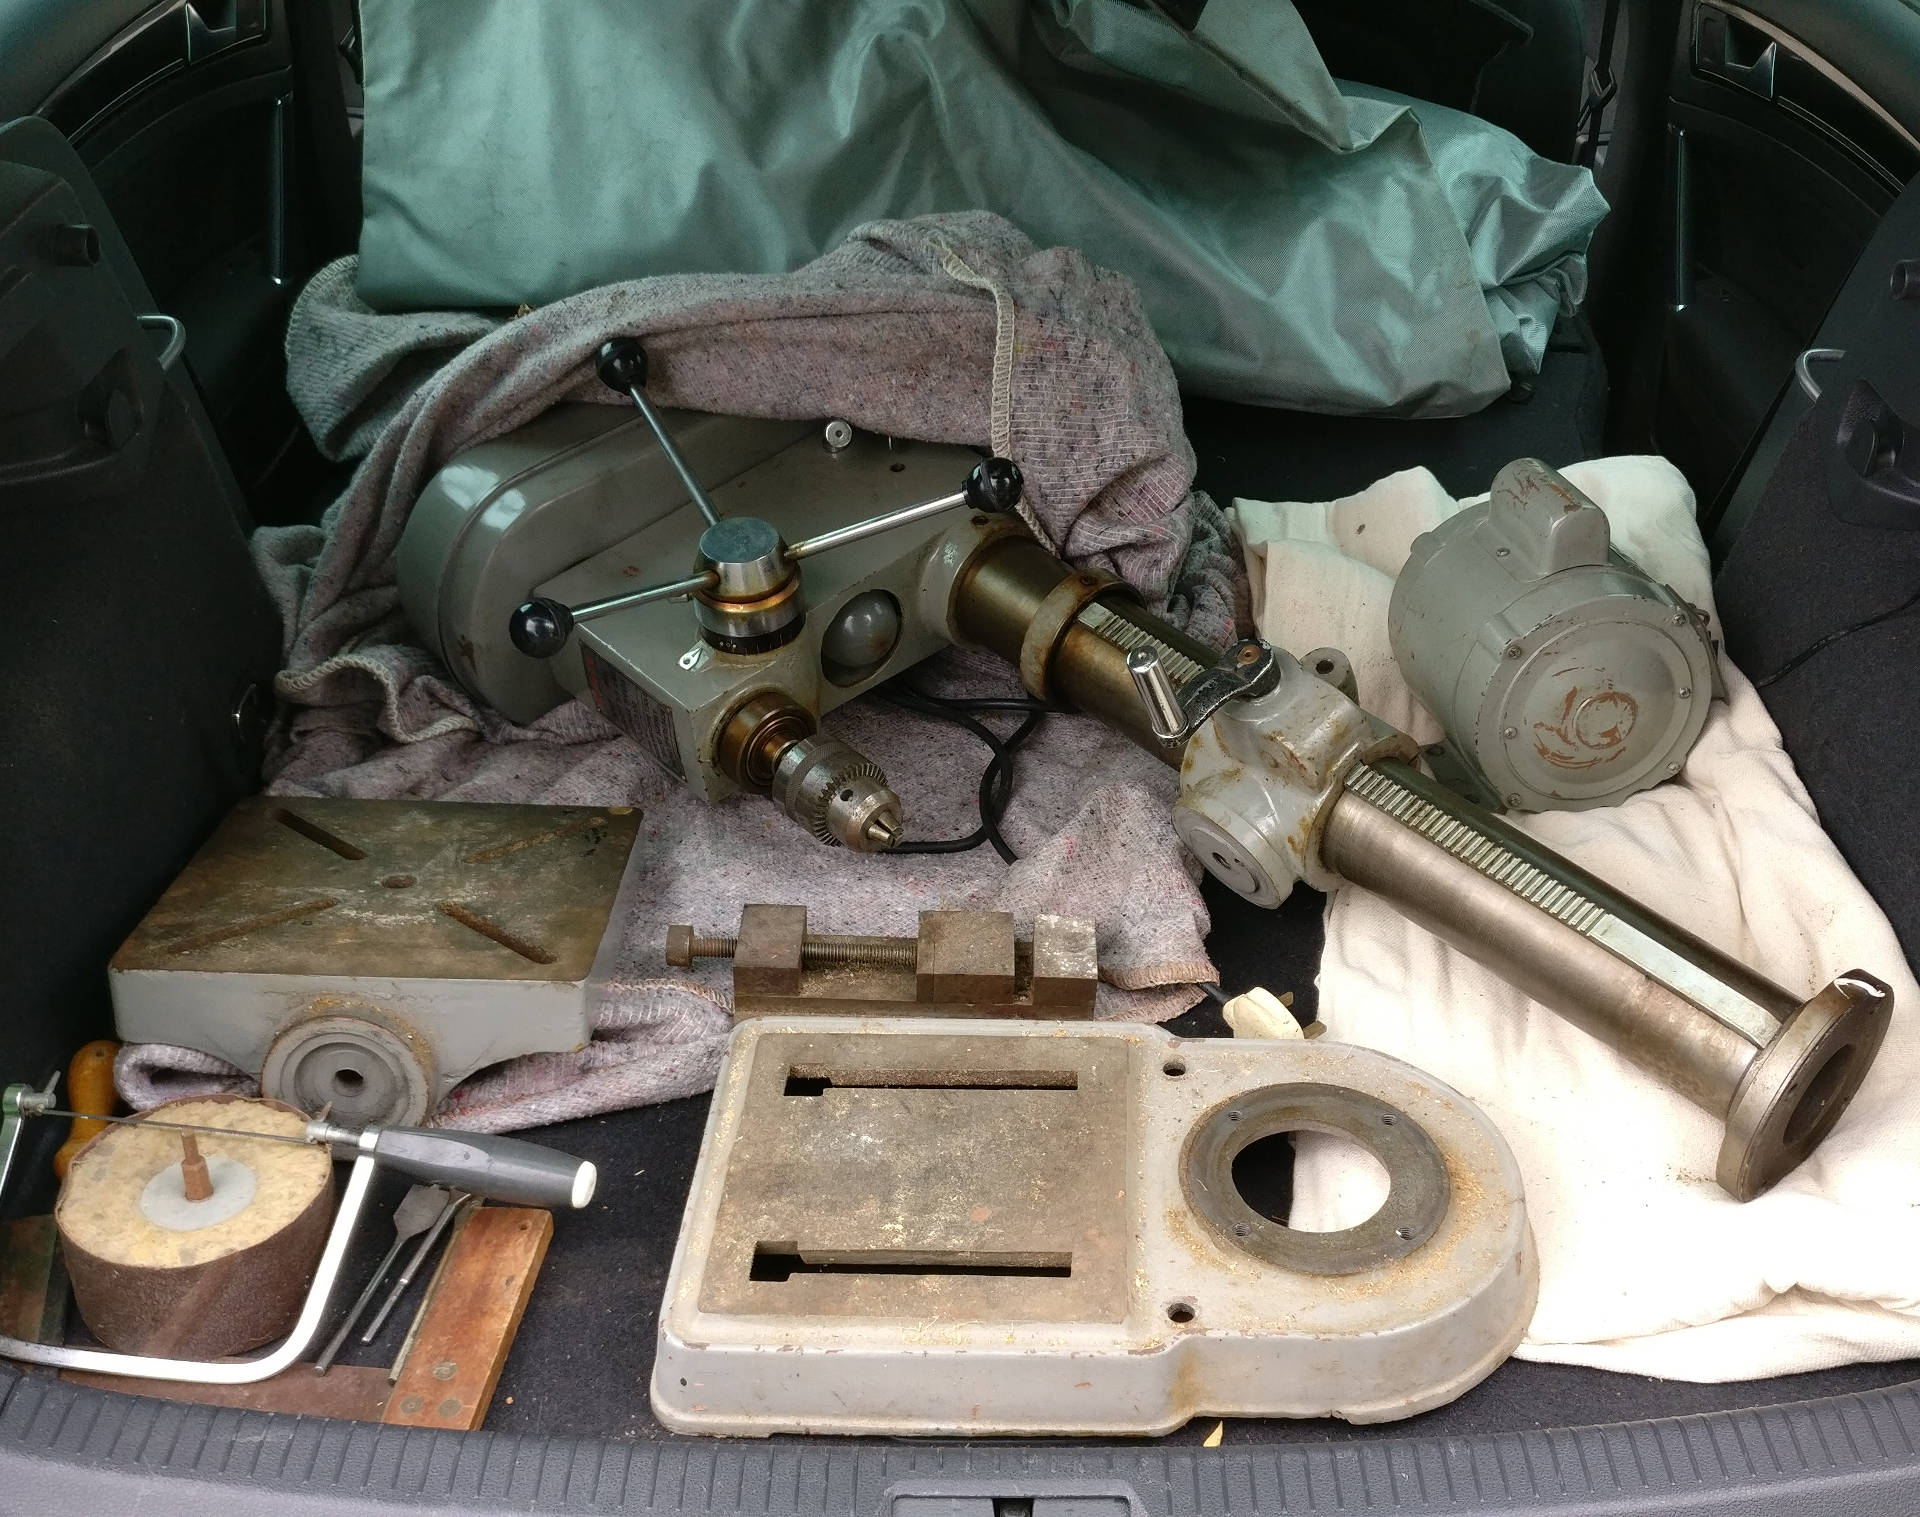 Warco drill, disassembled